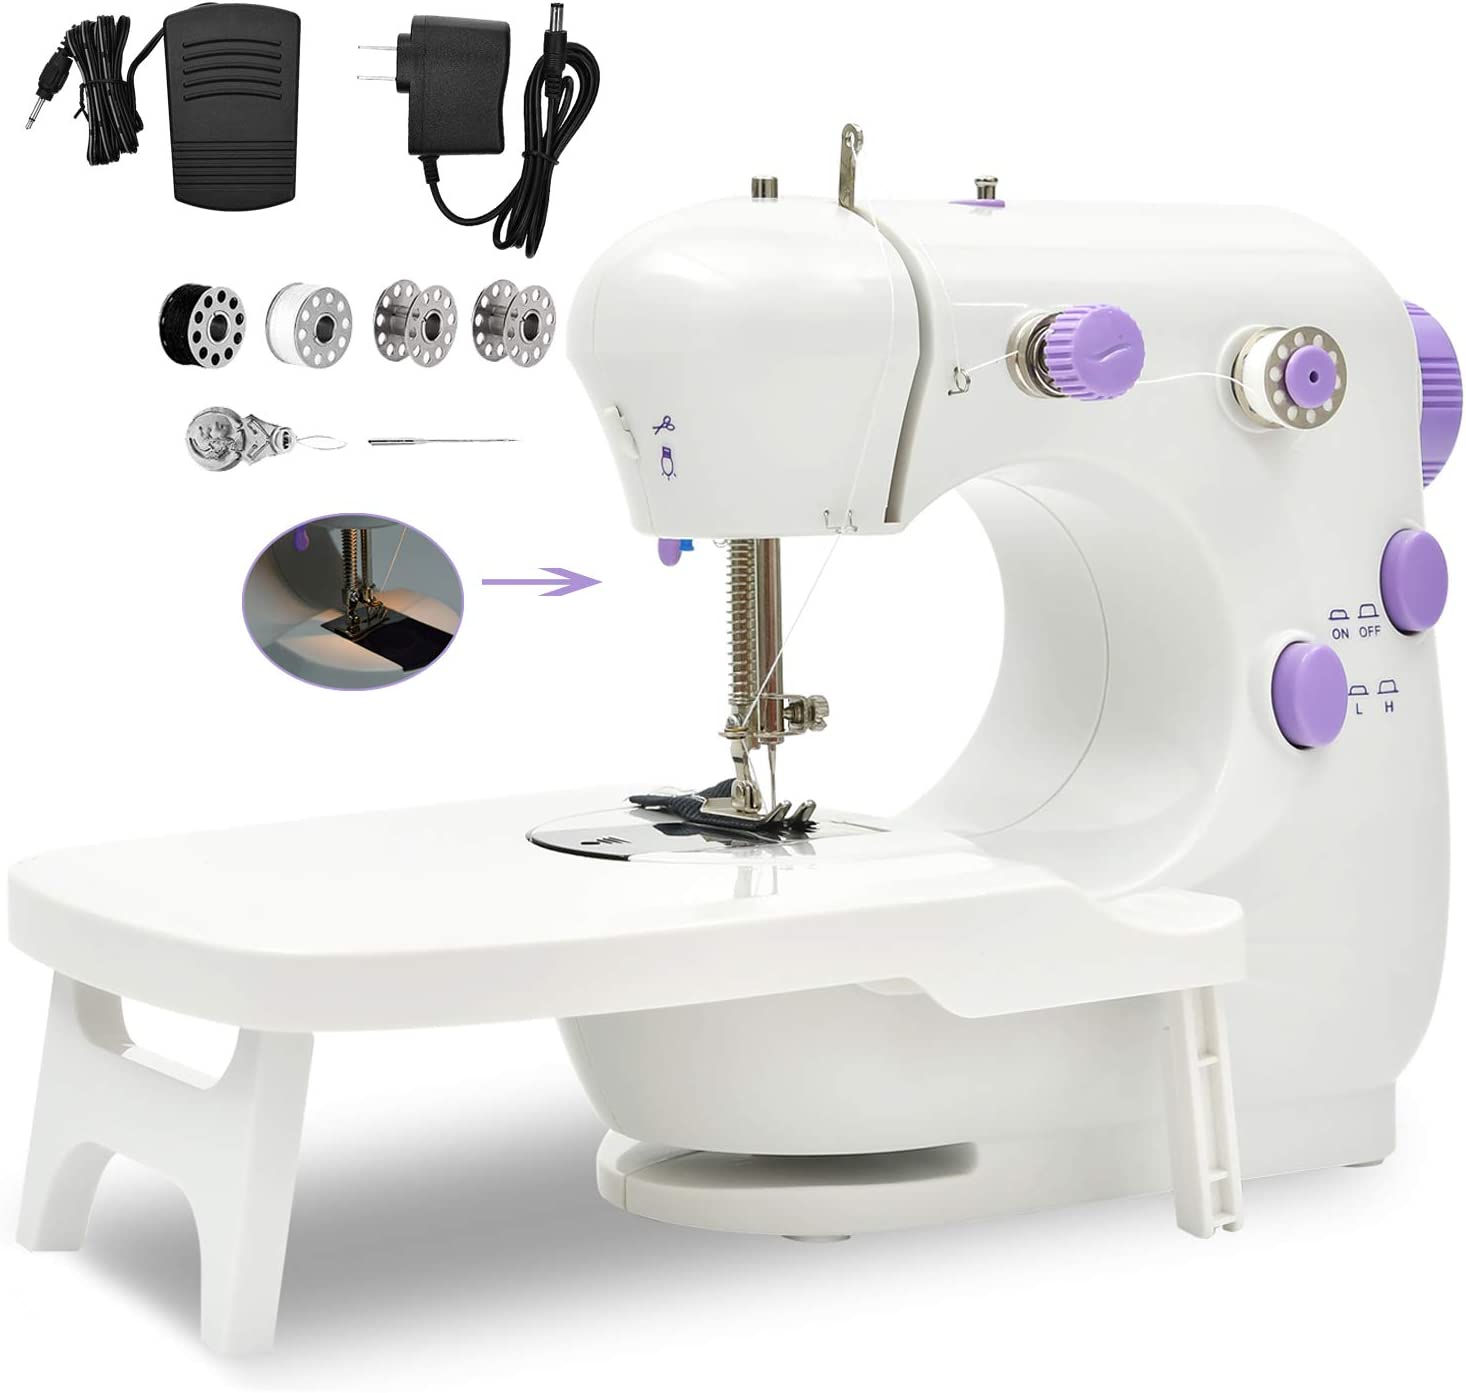 Sewing Machine, Portable Household Lightweight Mini Sewing Machine for Beginners, Adjustable Double Threads Machine Sewing with Extension Table, Sewing Kit for Household,Travel